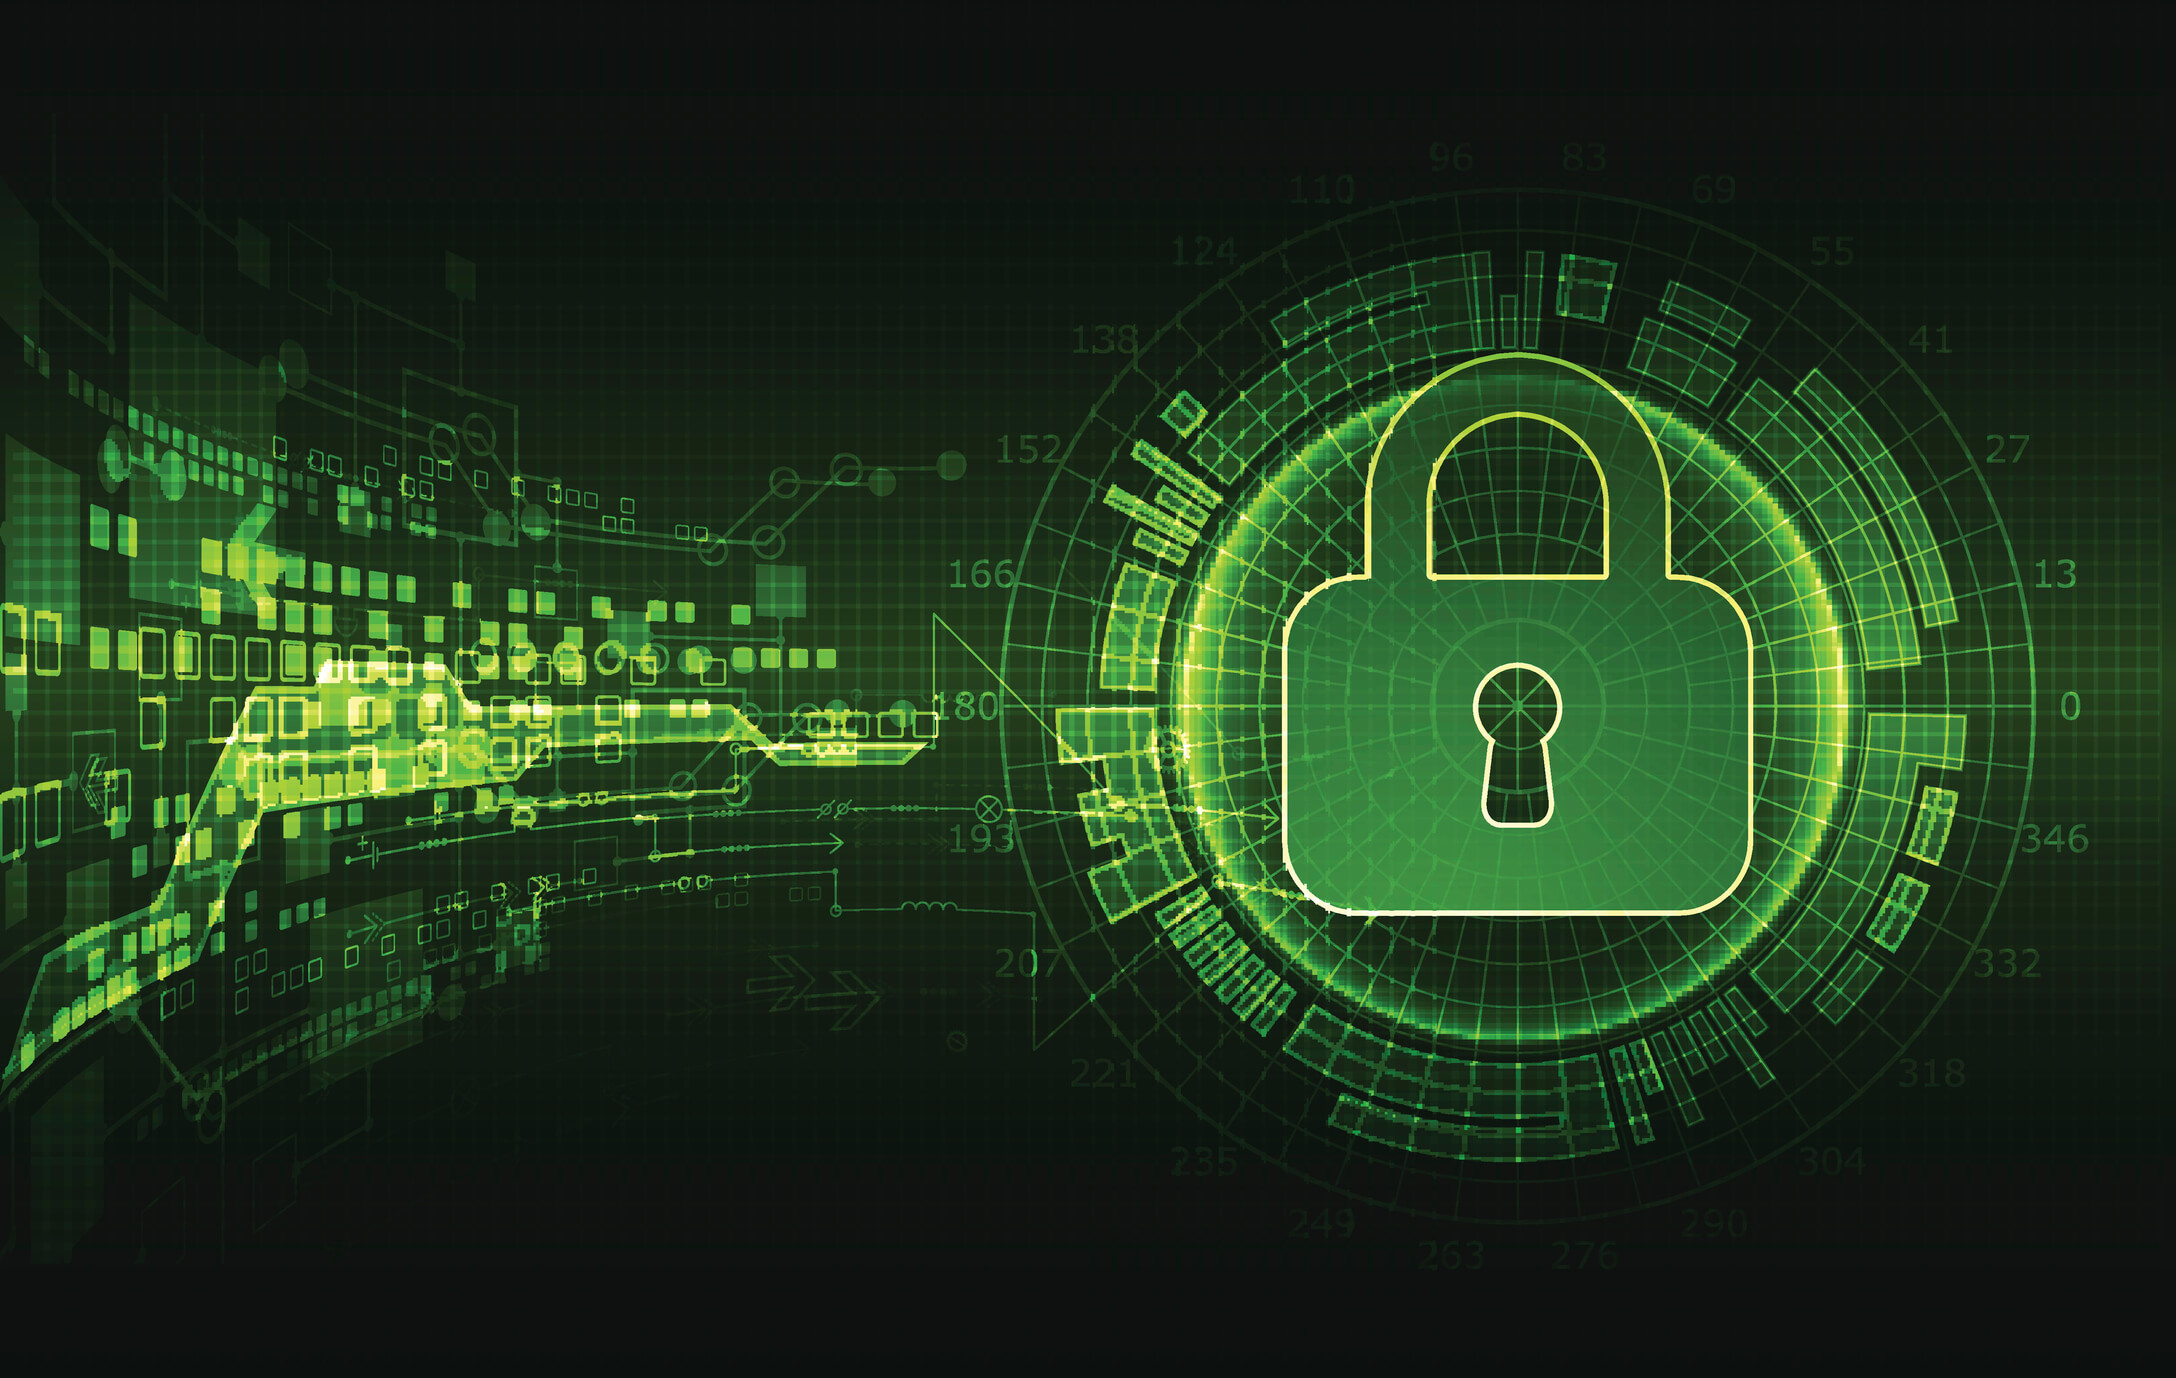 The UK Cyber Security Strategy 2016-2021 – A New Sheriff in Town?